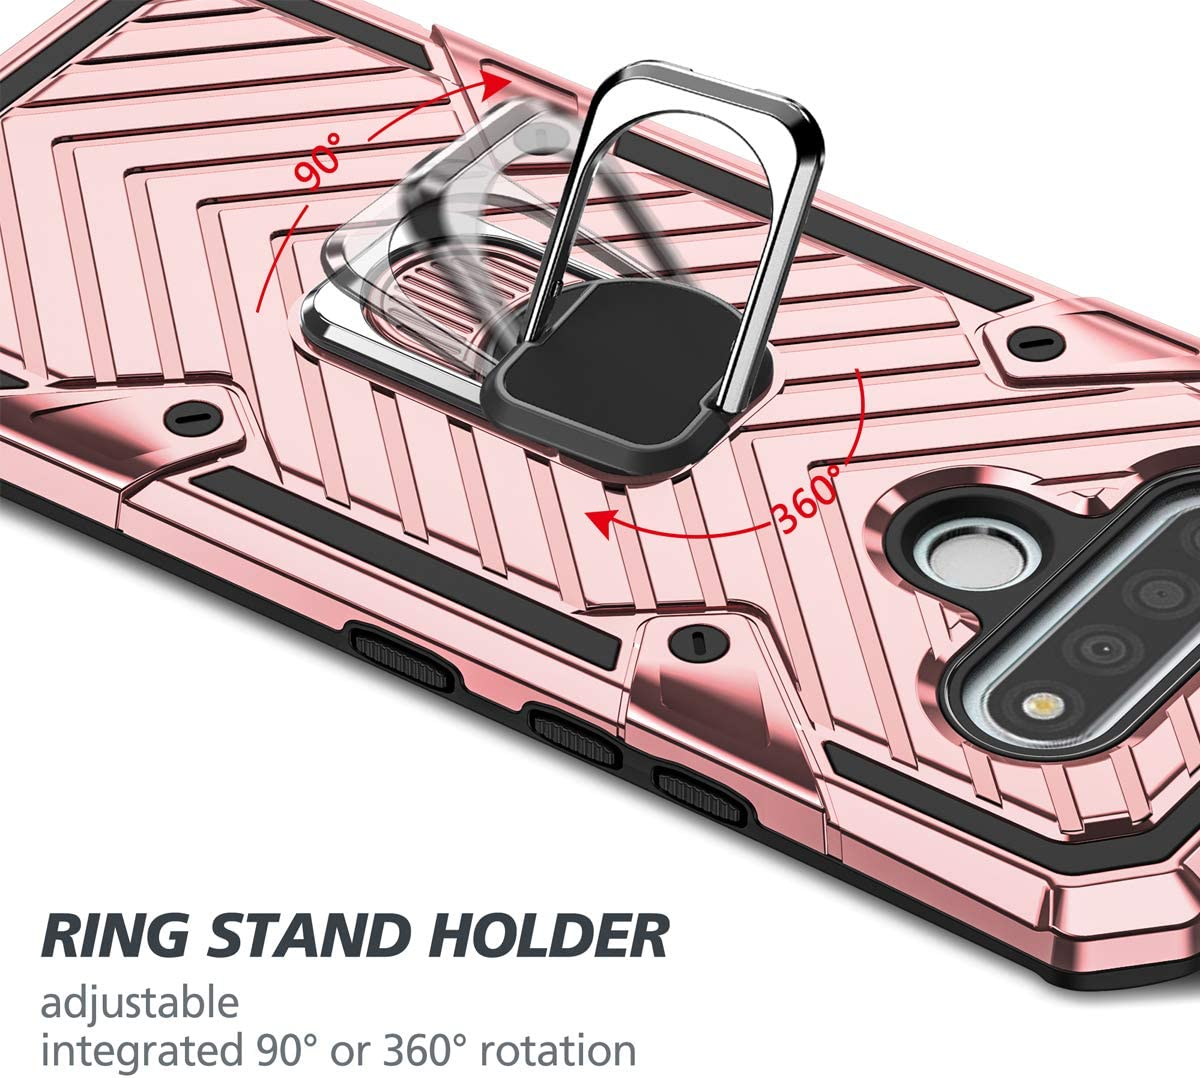 KKG LG Stylo 6 Phone Case,Military Grade Shockproof Dual Layer Protection Case only for LG Stylo 6 ,360 Degree Rotating Ring Adsorbable to Magnetic Car Mount Holder,Rose Gold 6.8 2020